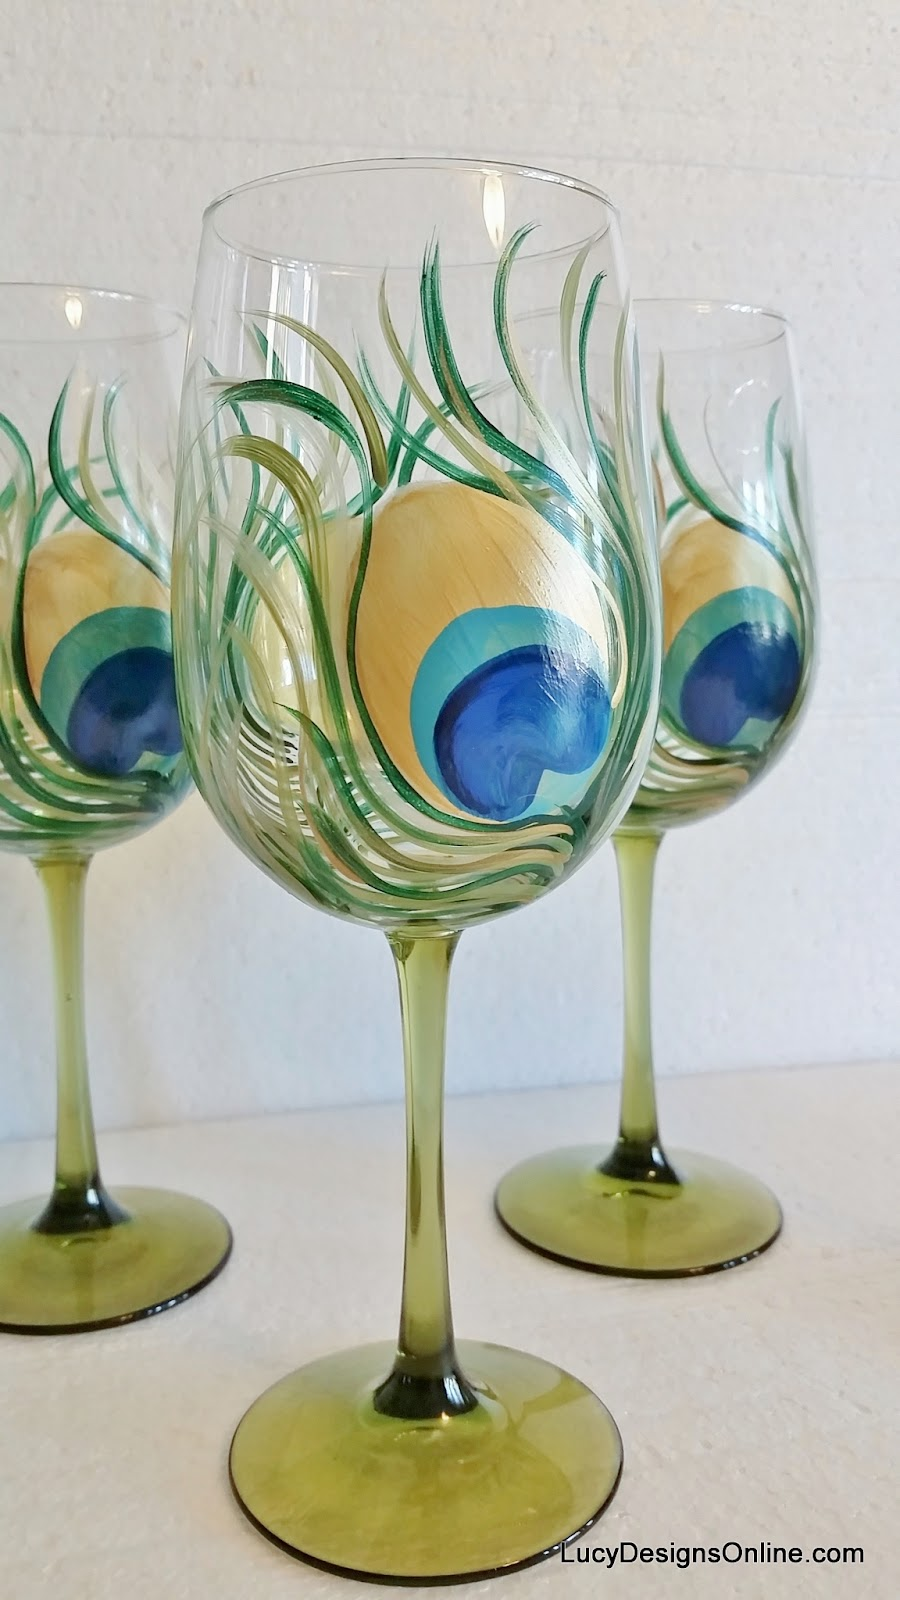 Diy hand painted wine glasses with peacock feather design for Homemade glass painting designs